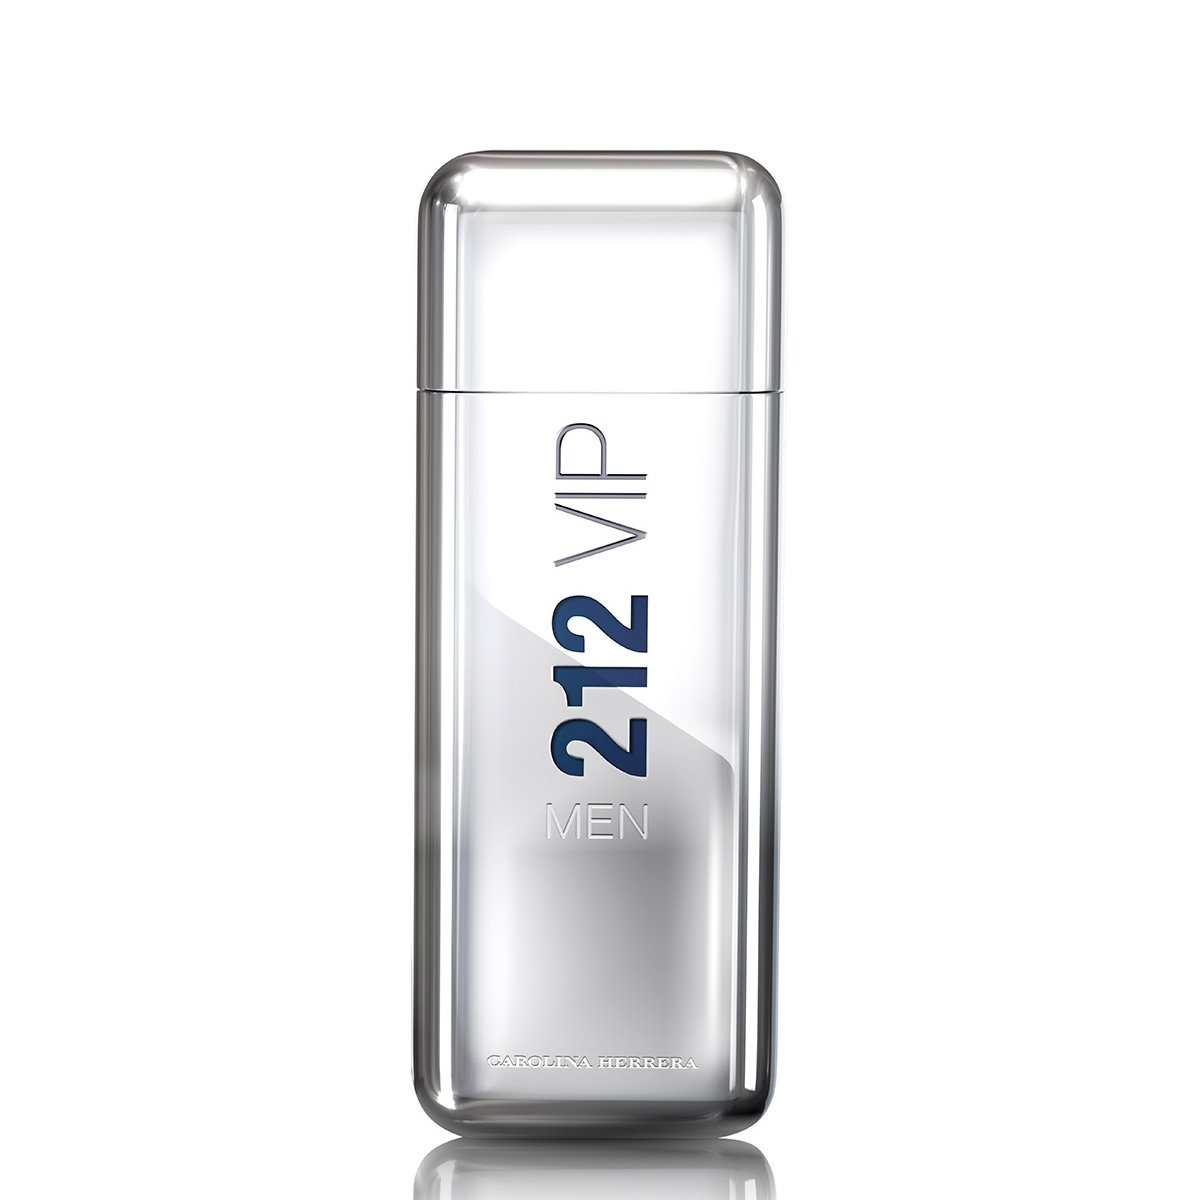 212 VIP Men Carolina Herrera Eau de Toilette - Perfume Masculino 100ml